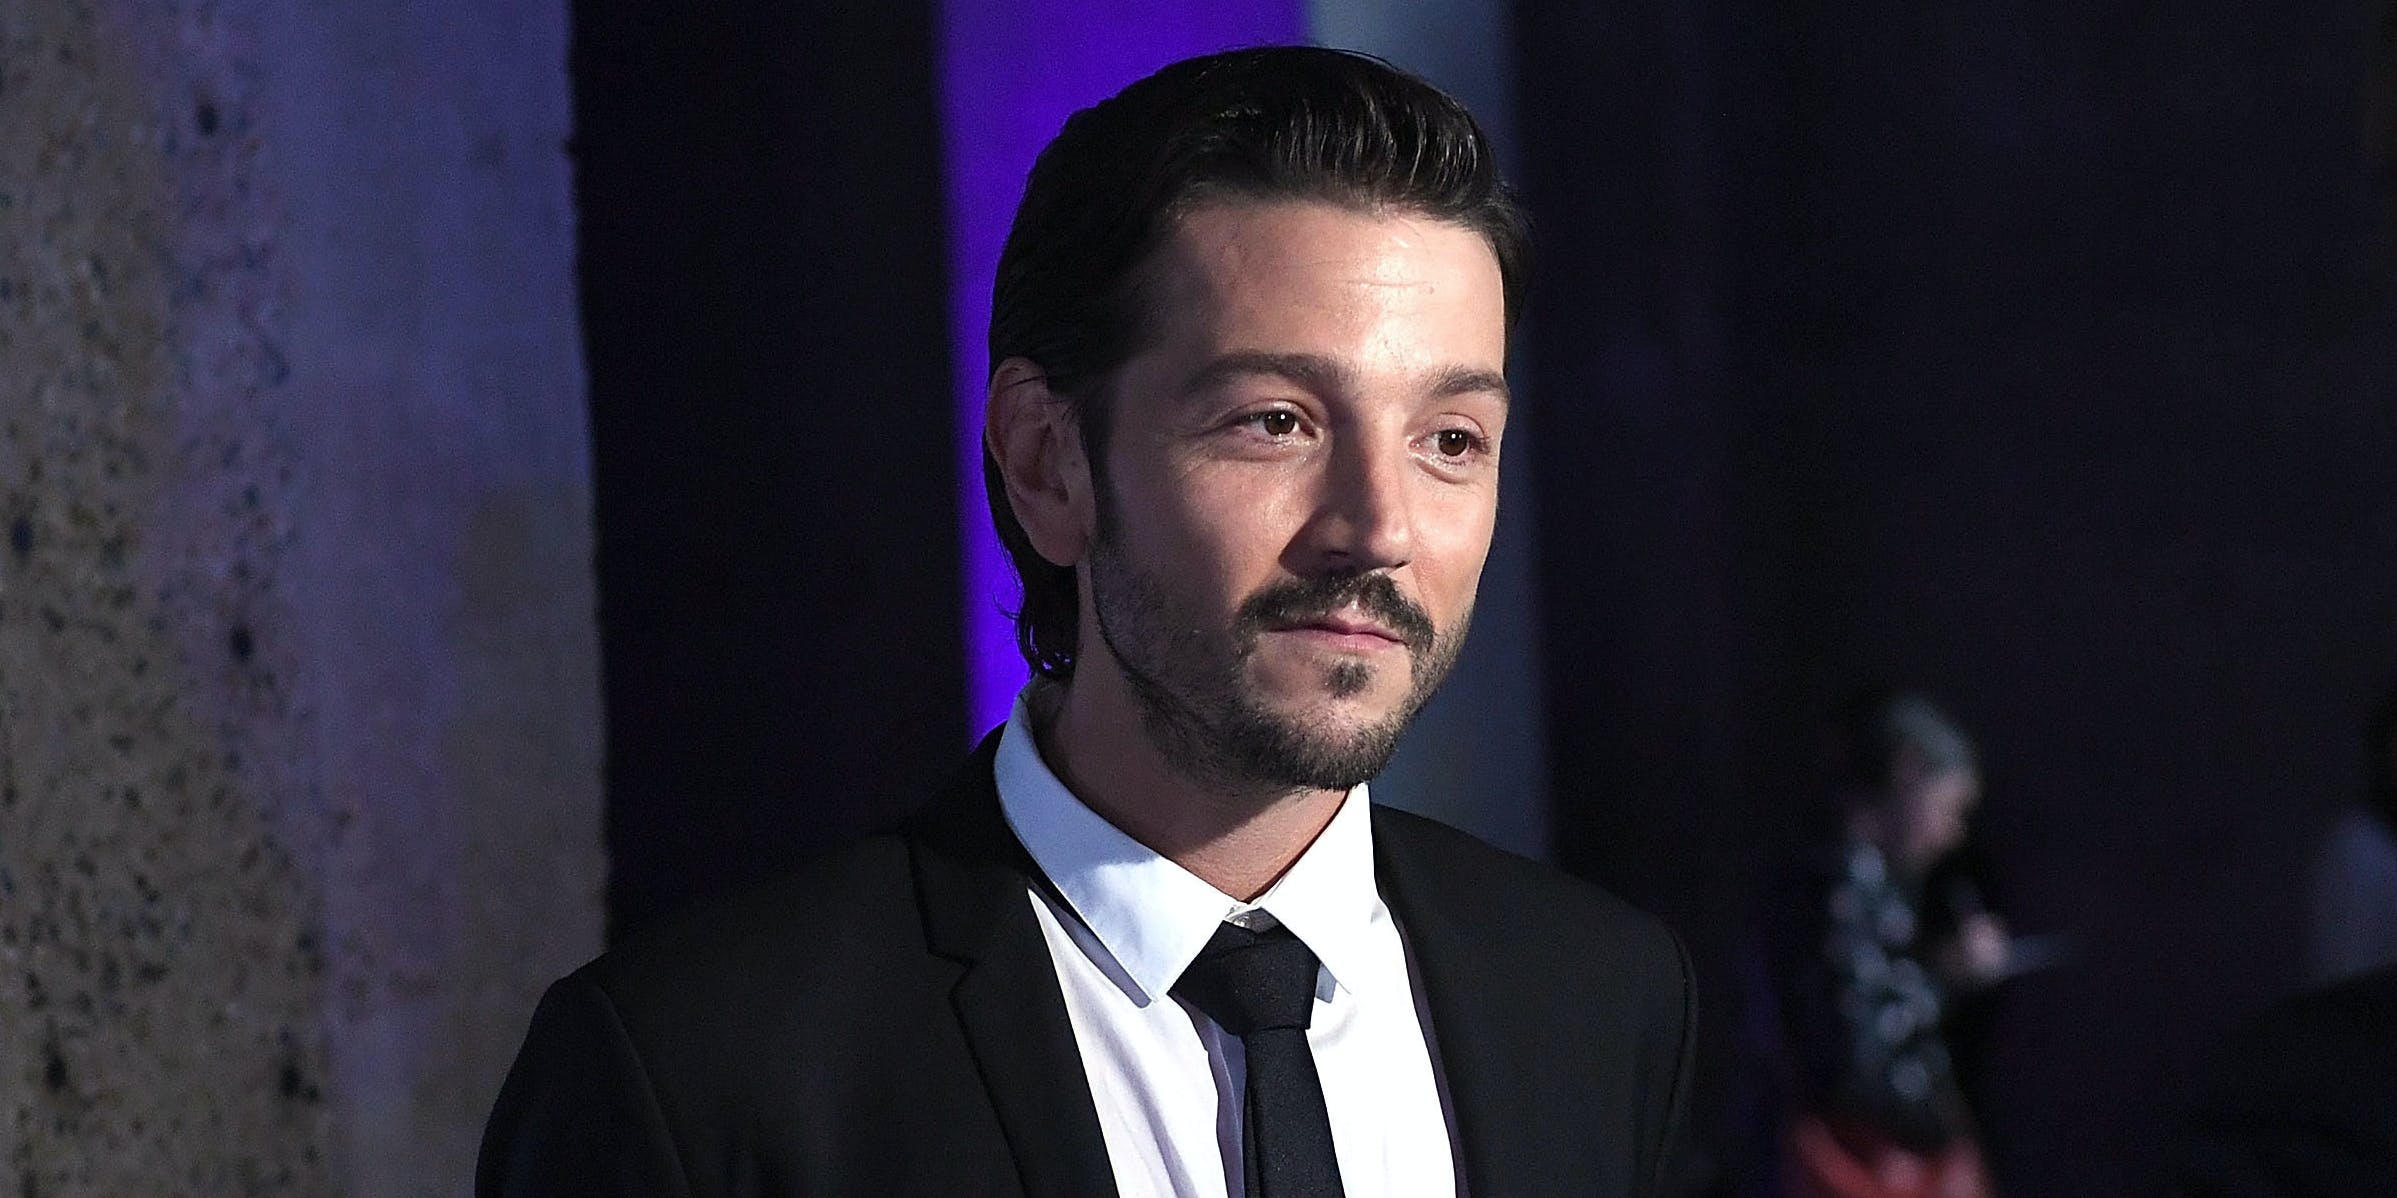 LONDON, ENGLAND - DECEMBER 13:  Diego Luna attends the launch event and reception for Lucasfilm's highly anticipated, first-ever, standalone Star Wars adventure 'Rogue One: A Star Wars Story' at the Tate Modern on December 13, 2016 in London, England.  (Photo by Stuart C. Wilson/Getty Images for Disney)